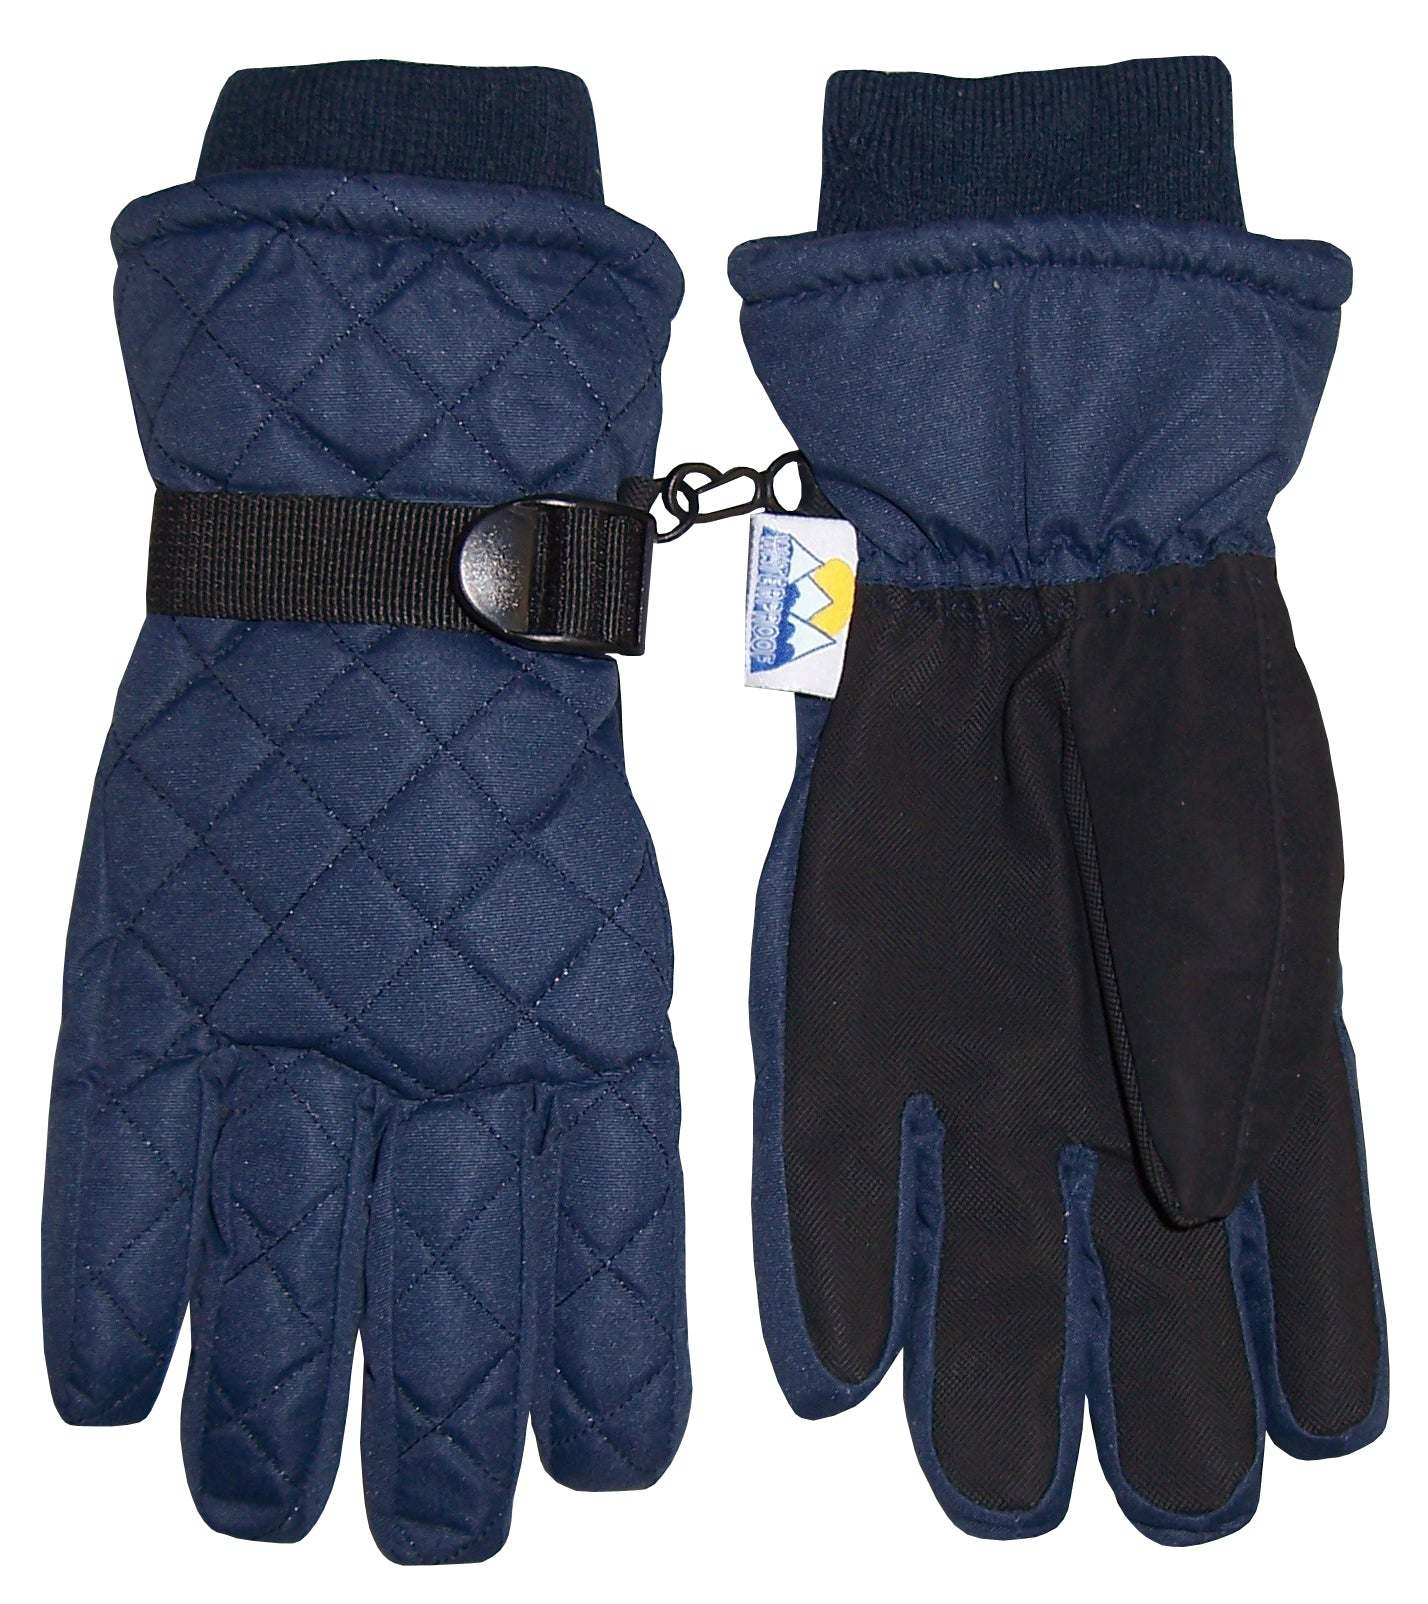 ed49ed893 Details about NICE CAPS Kids Boys Girls Quilted Snow Ski Waterproof Thinsulate  Winter Gloves